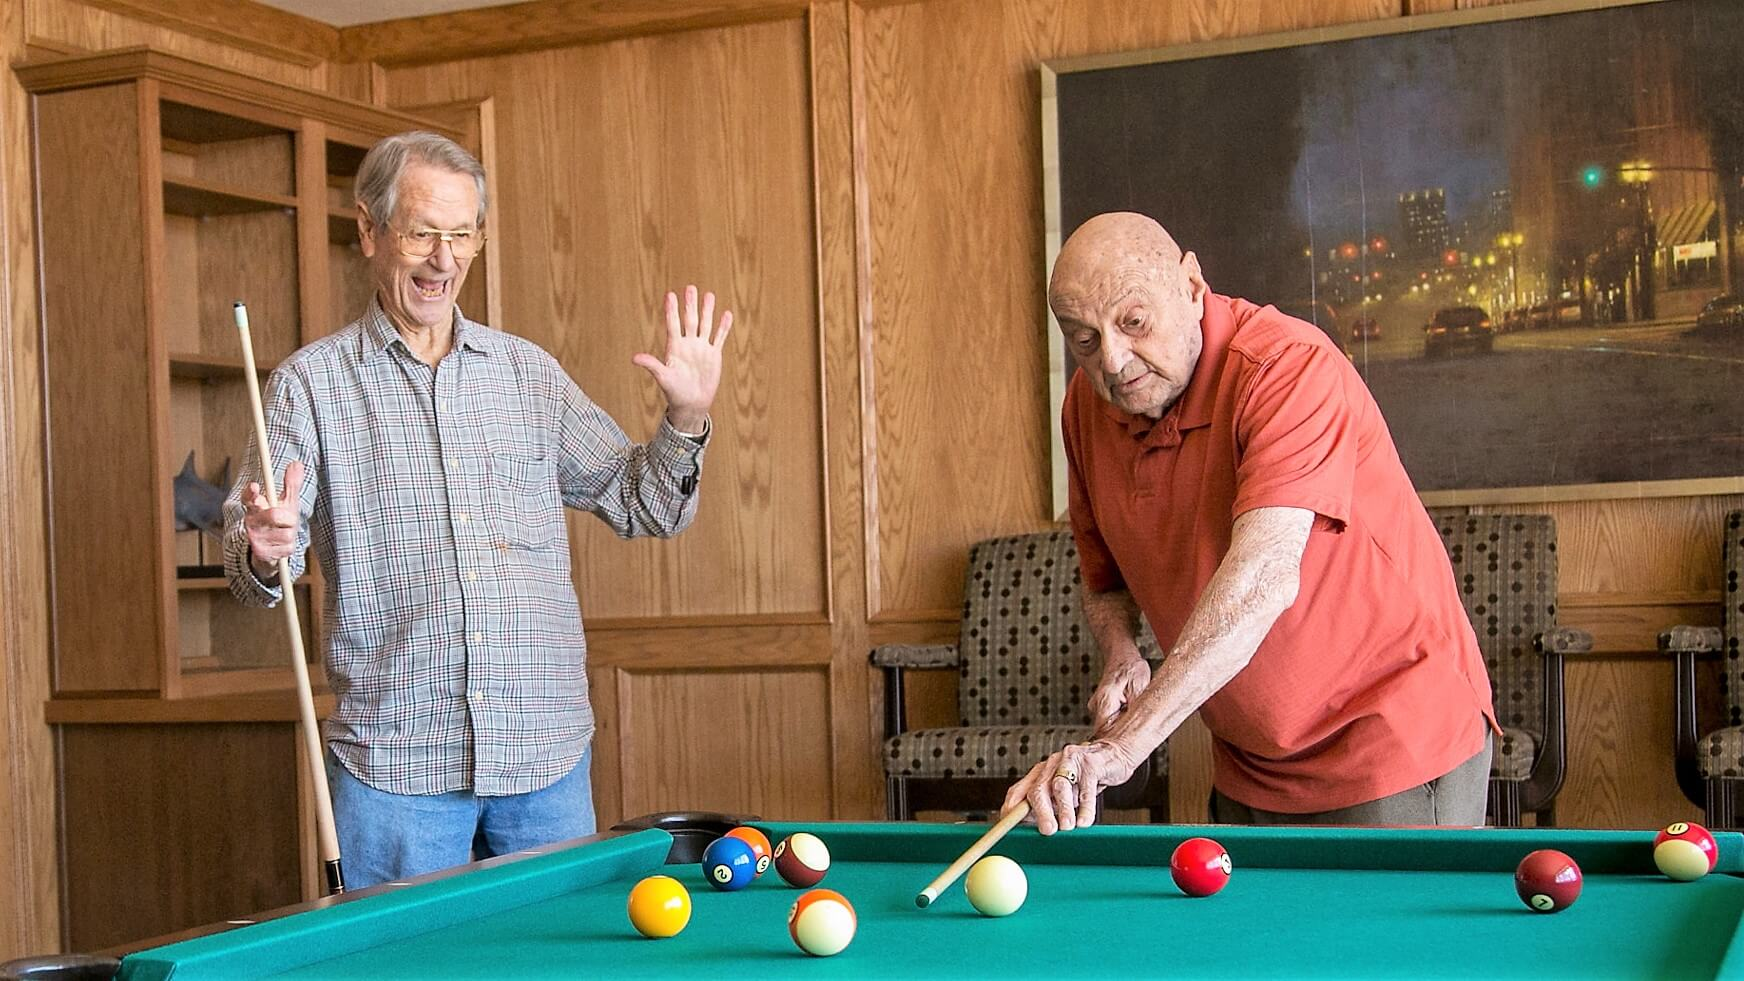 Gentlemen playing a friendly game of pool.